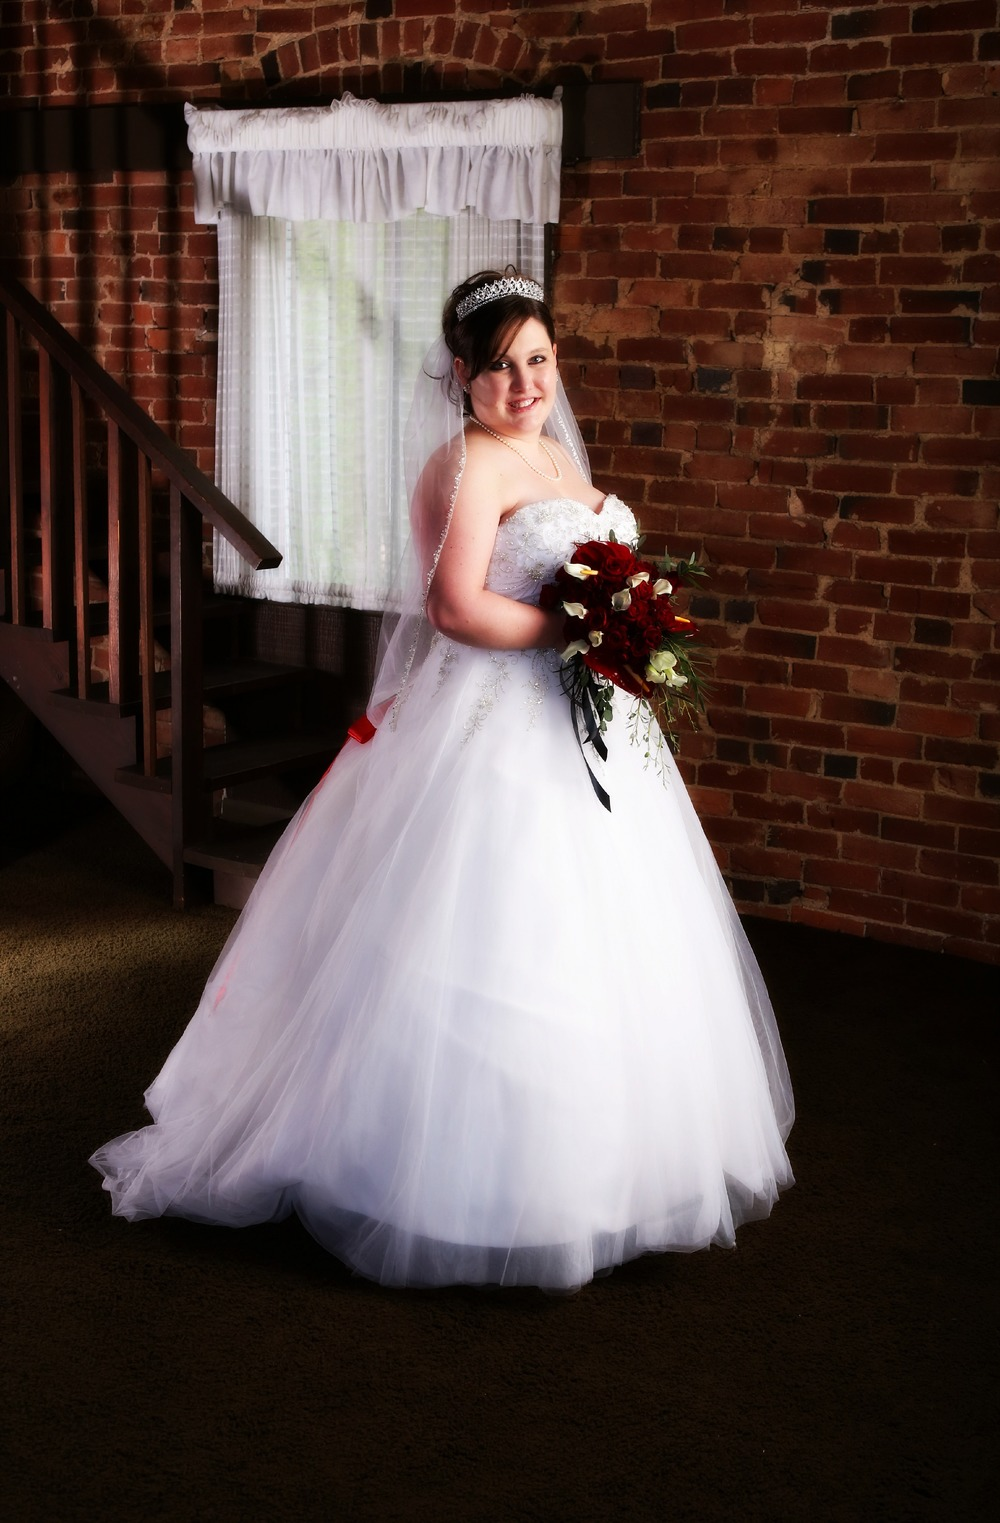 Bountiful wedding photography studio, located in Davis County Utah